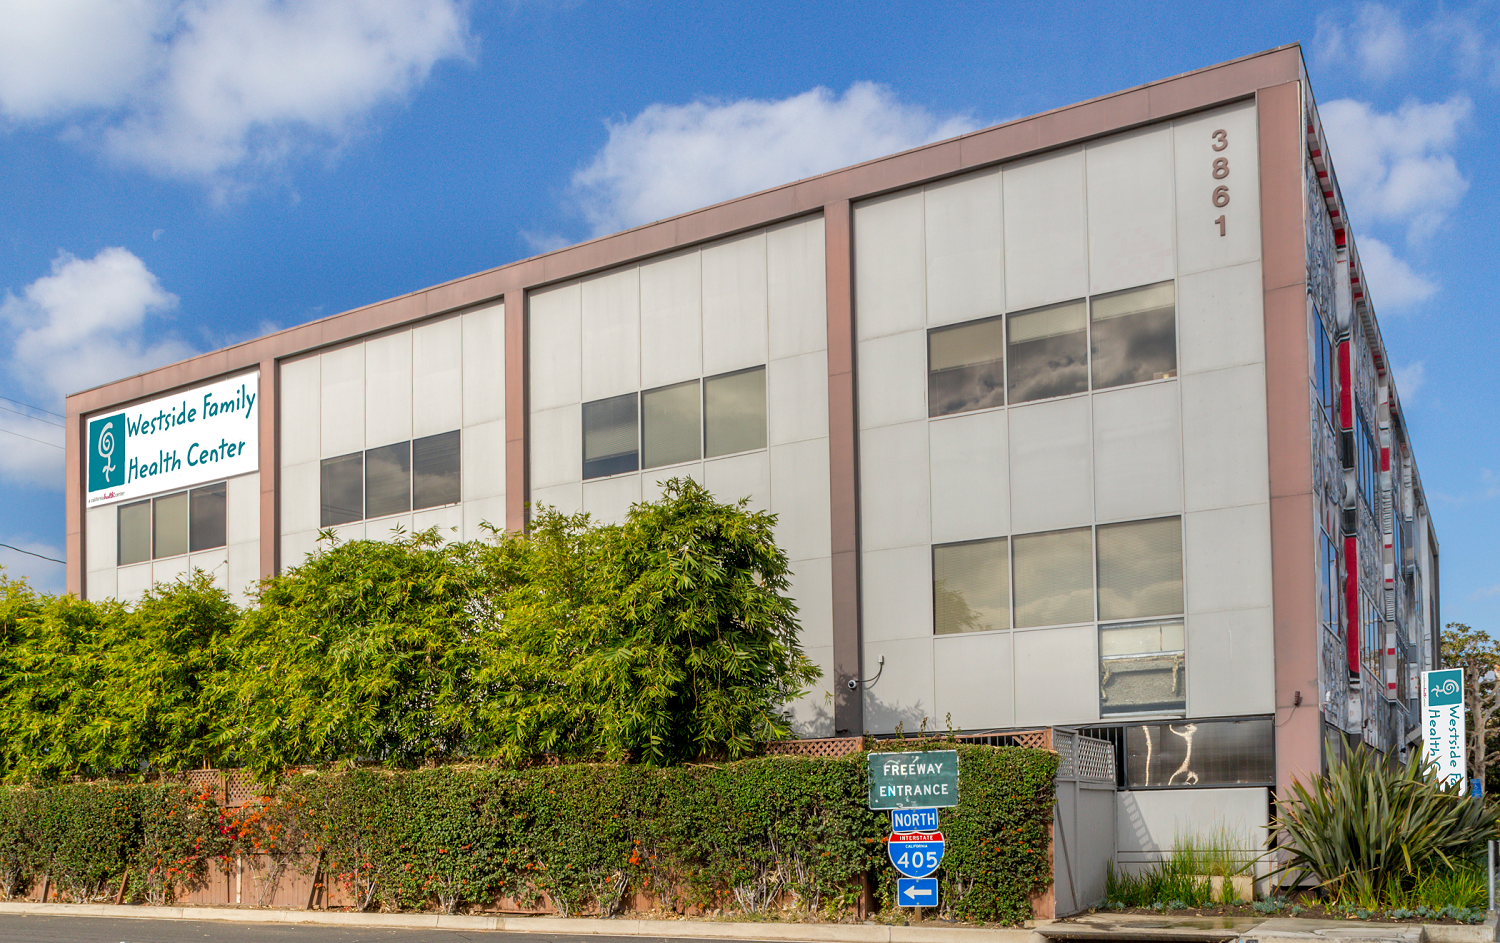 WFHC's New Site in Culver City